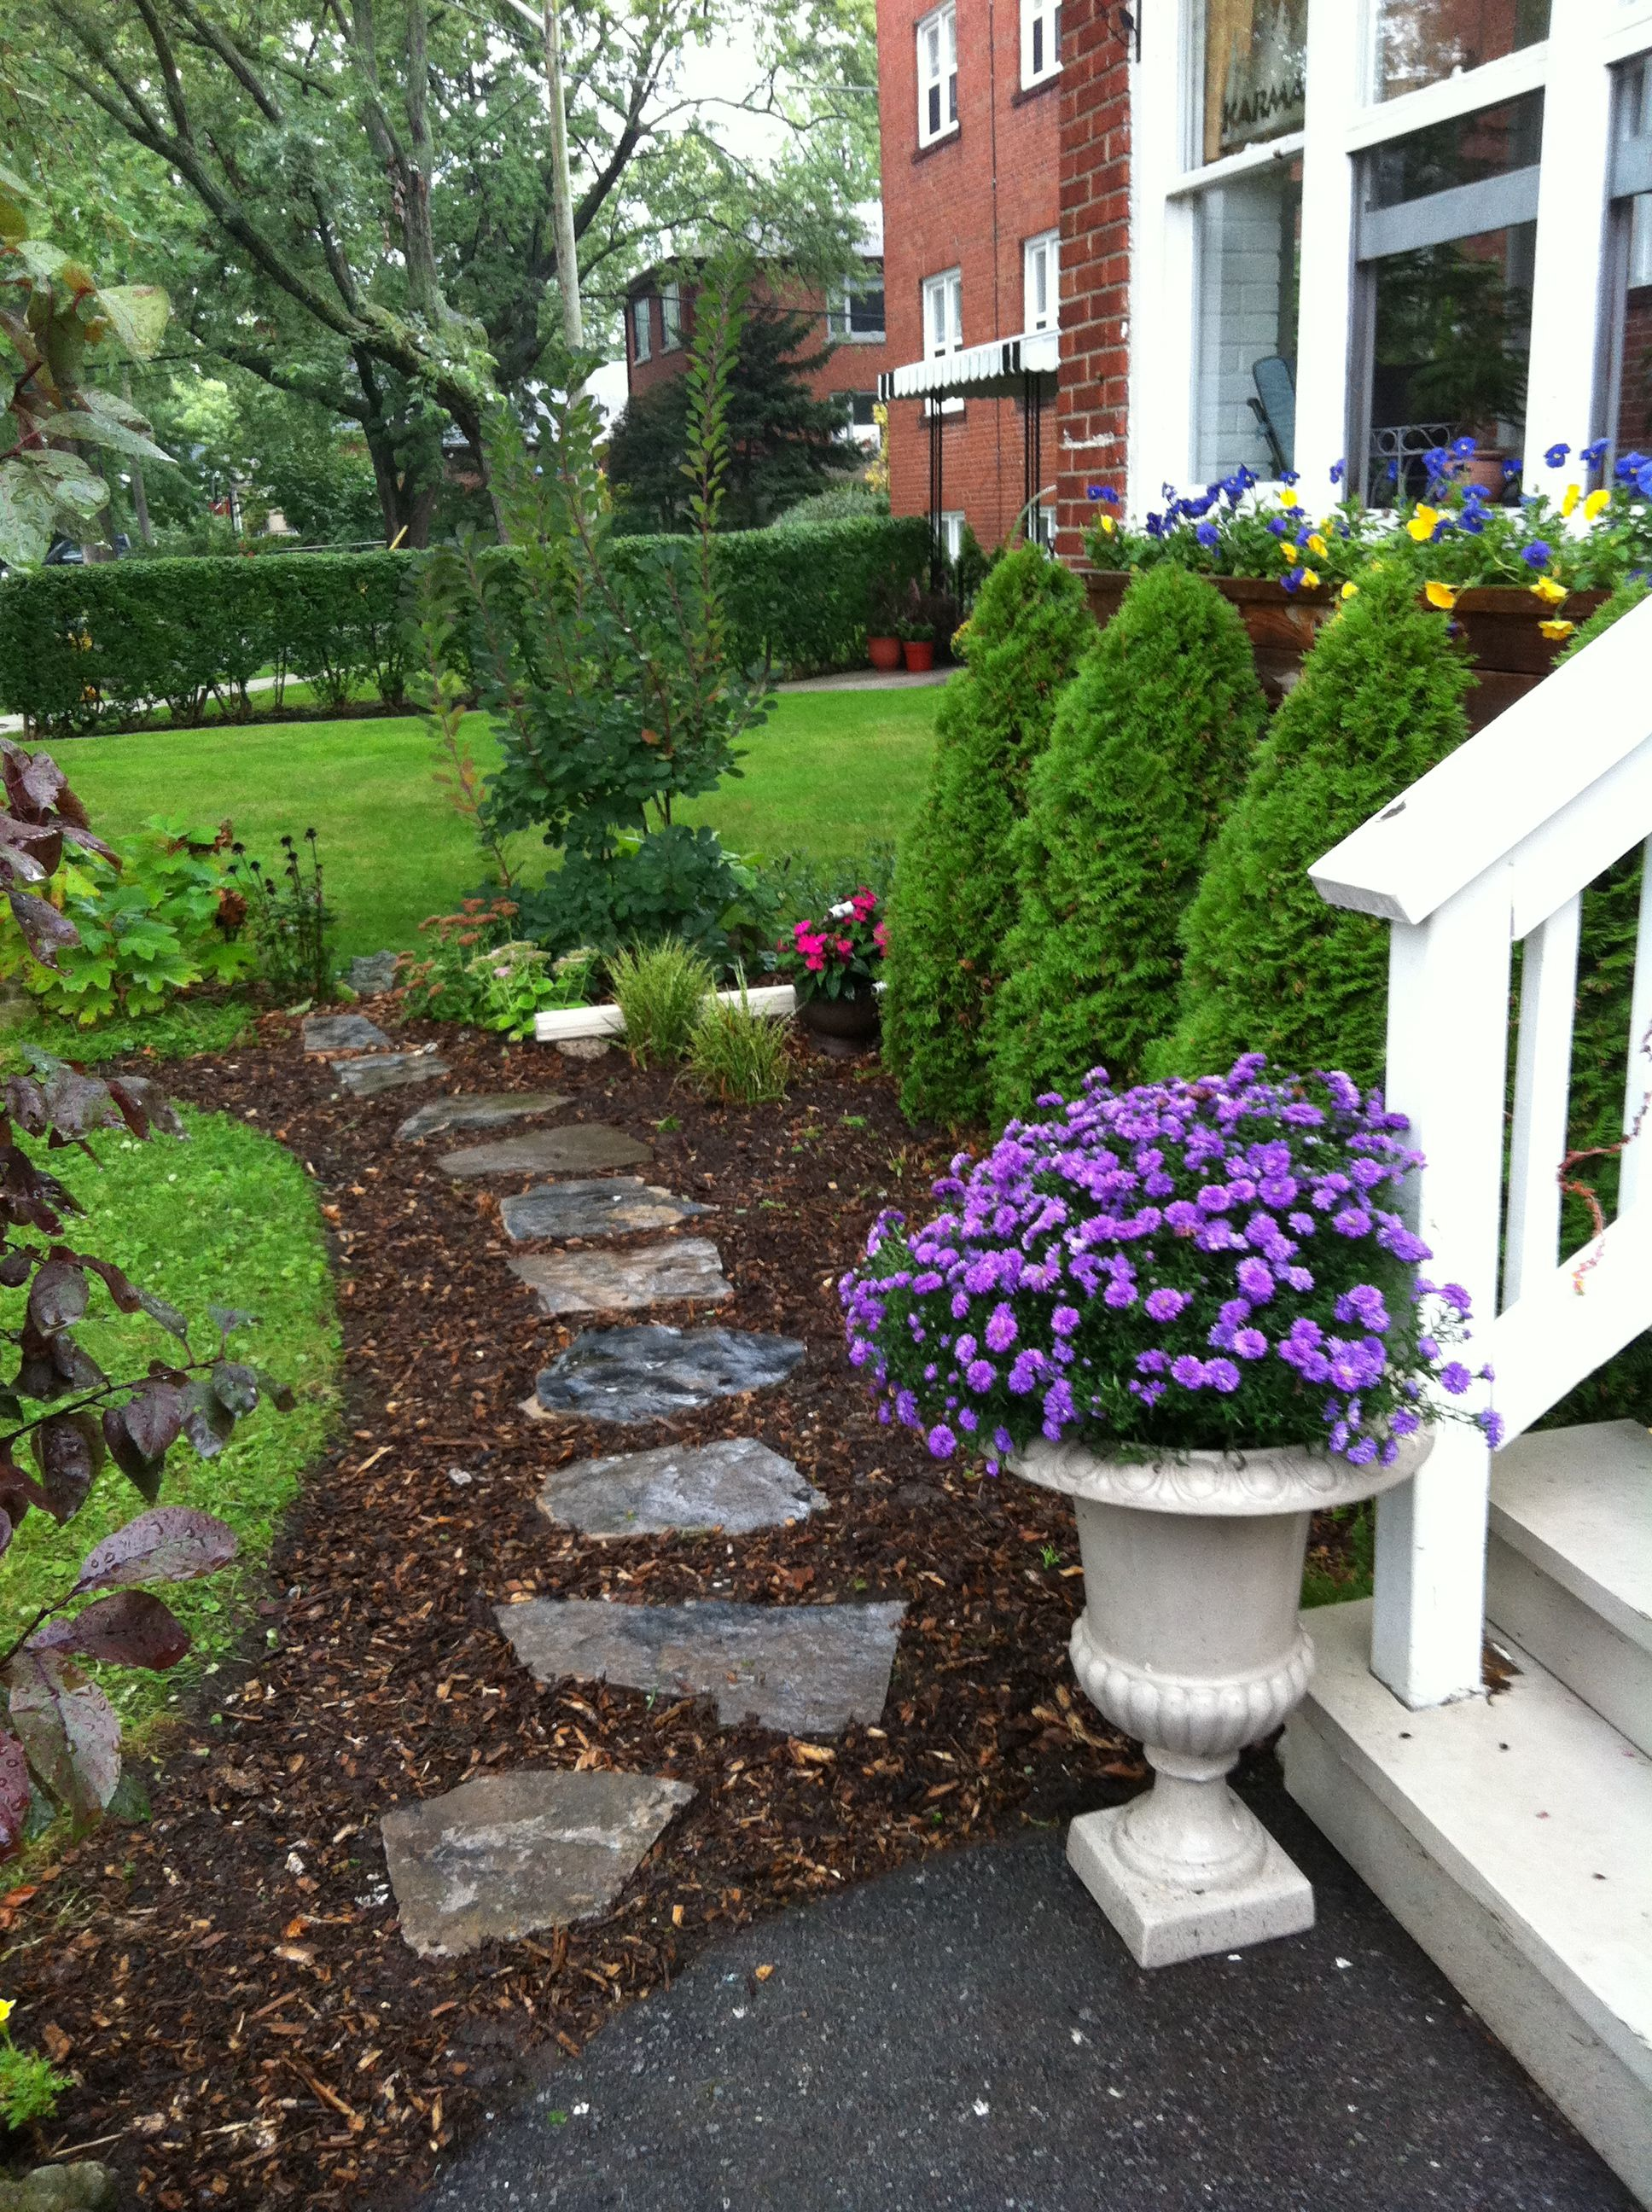 Flagstone path (With images) | Garden paths, Flagstone ...